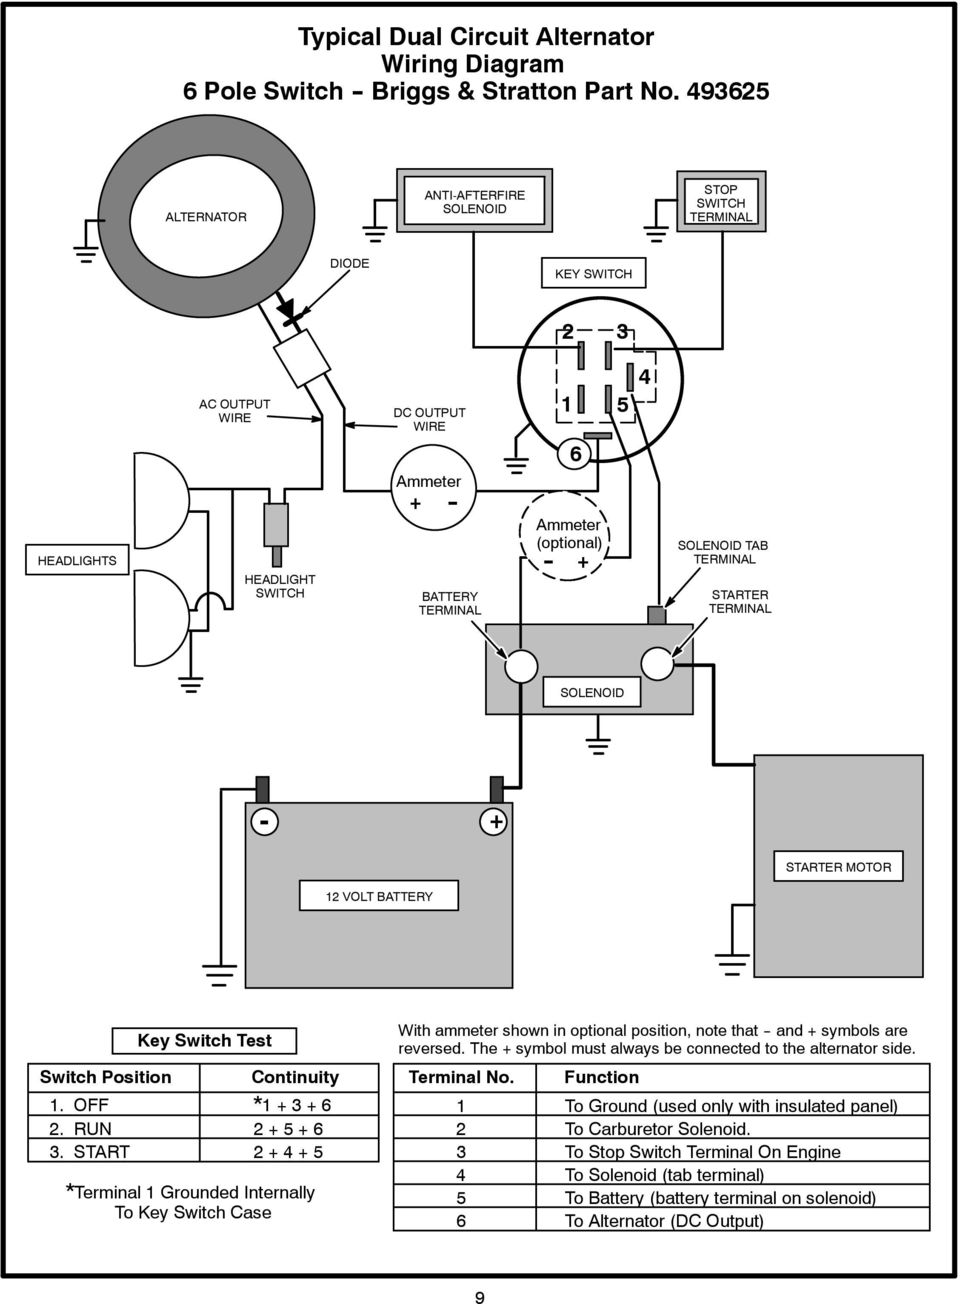 Briggs And Stratton Alternator Wiring Diagram - Reading ... on